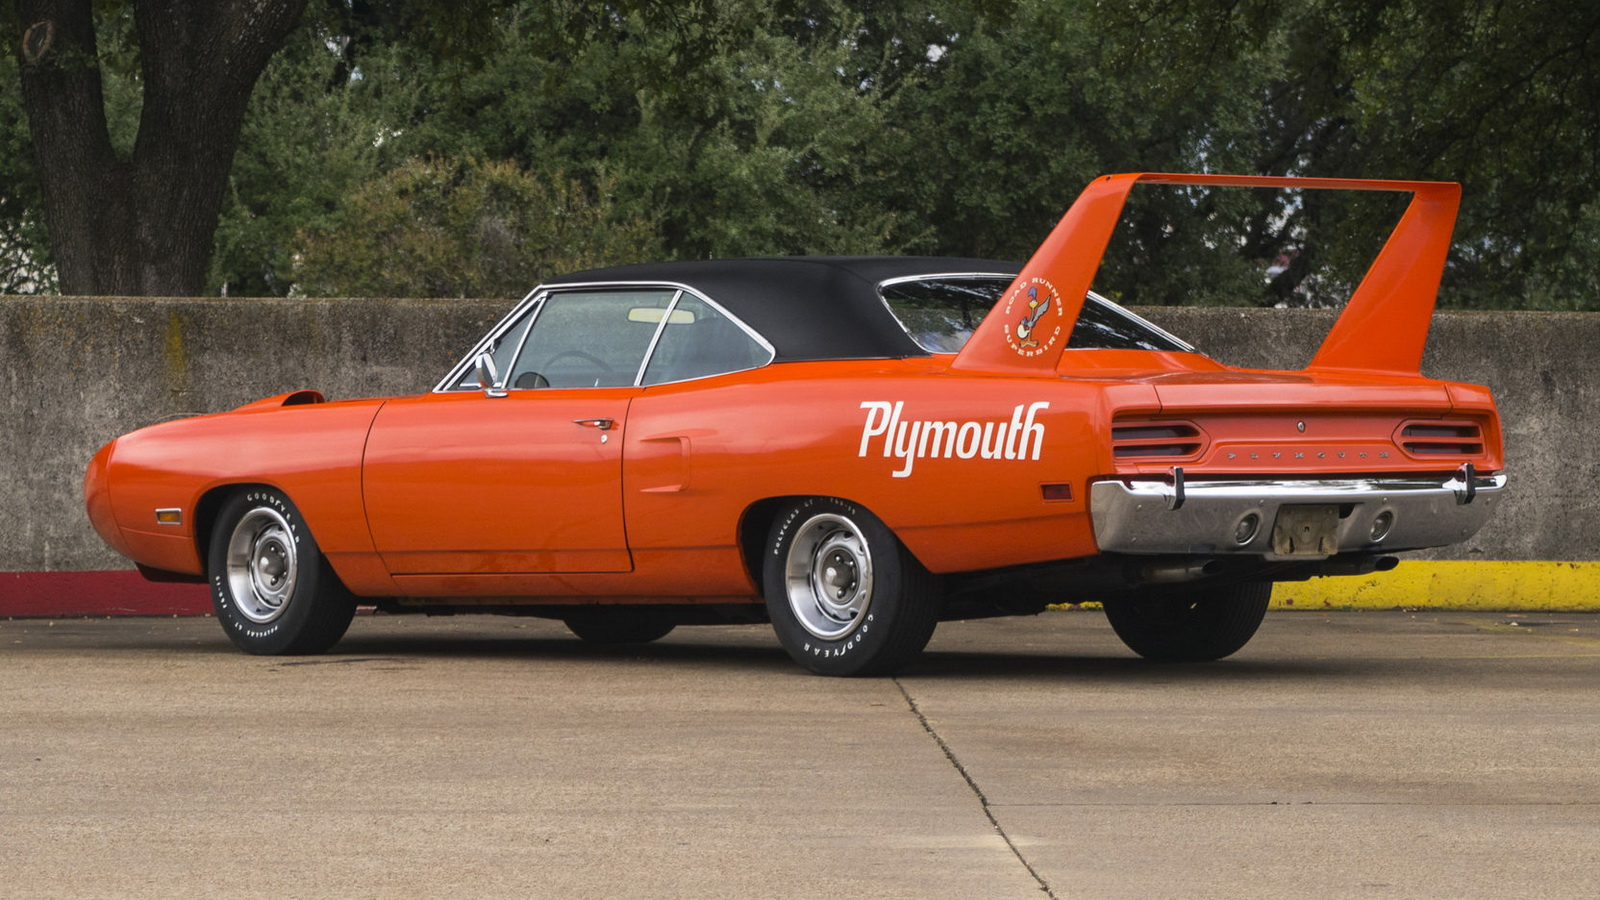 Plymouth Hemi Superbird 1970 in auction (3)